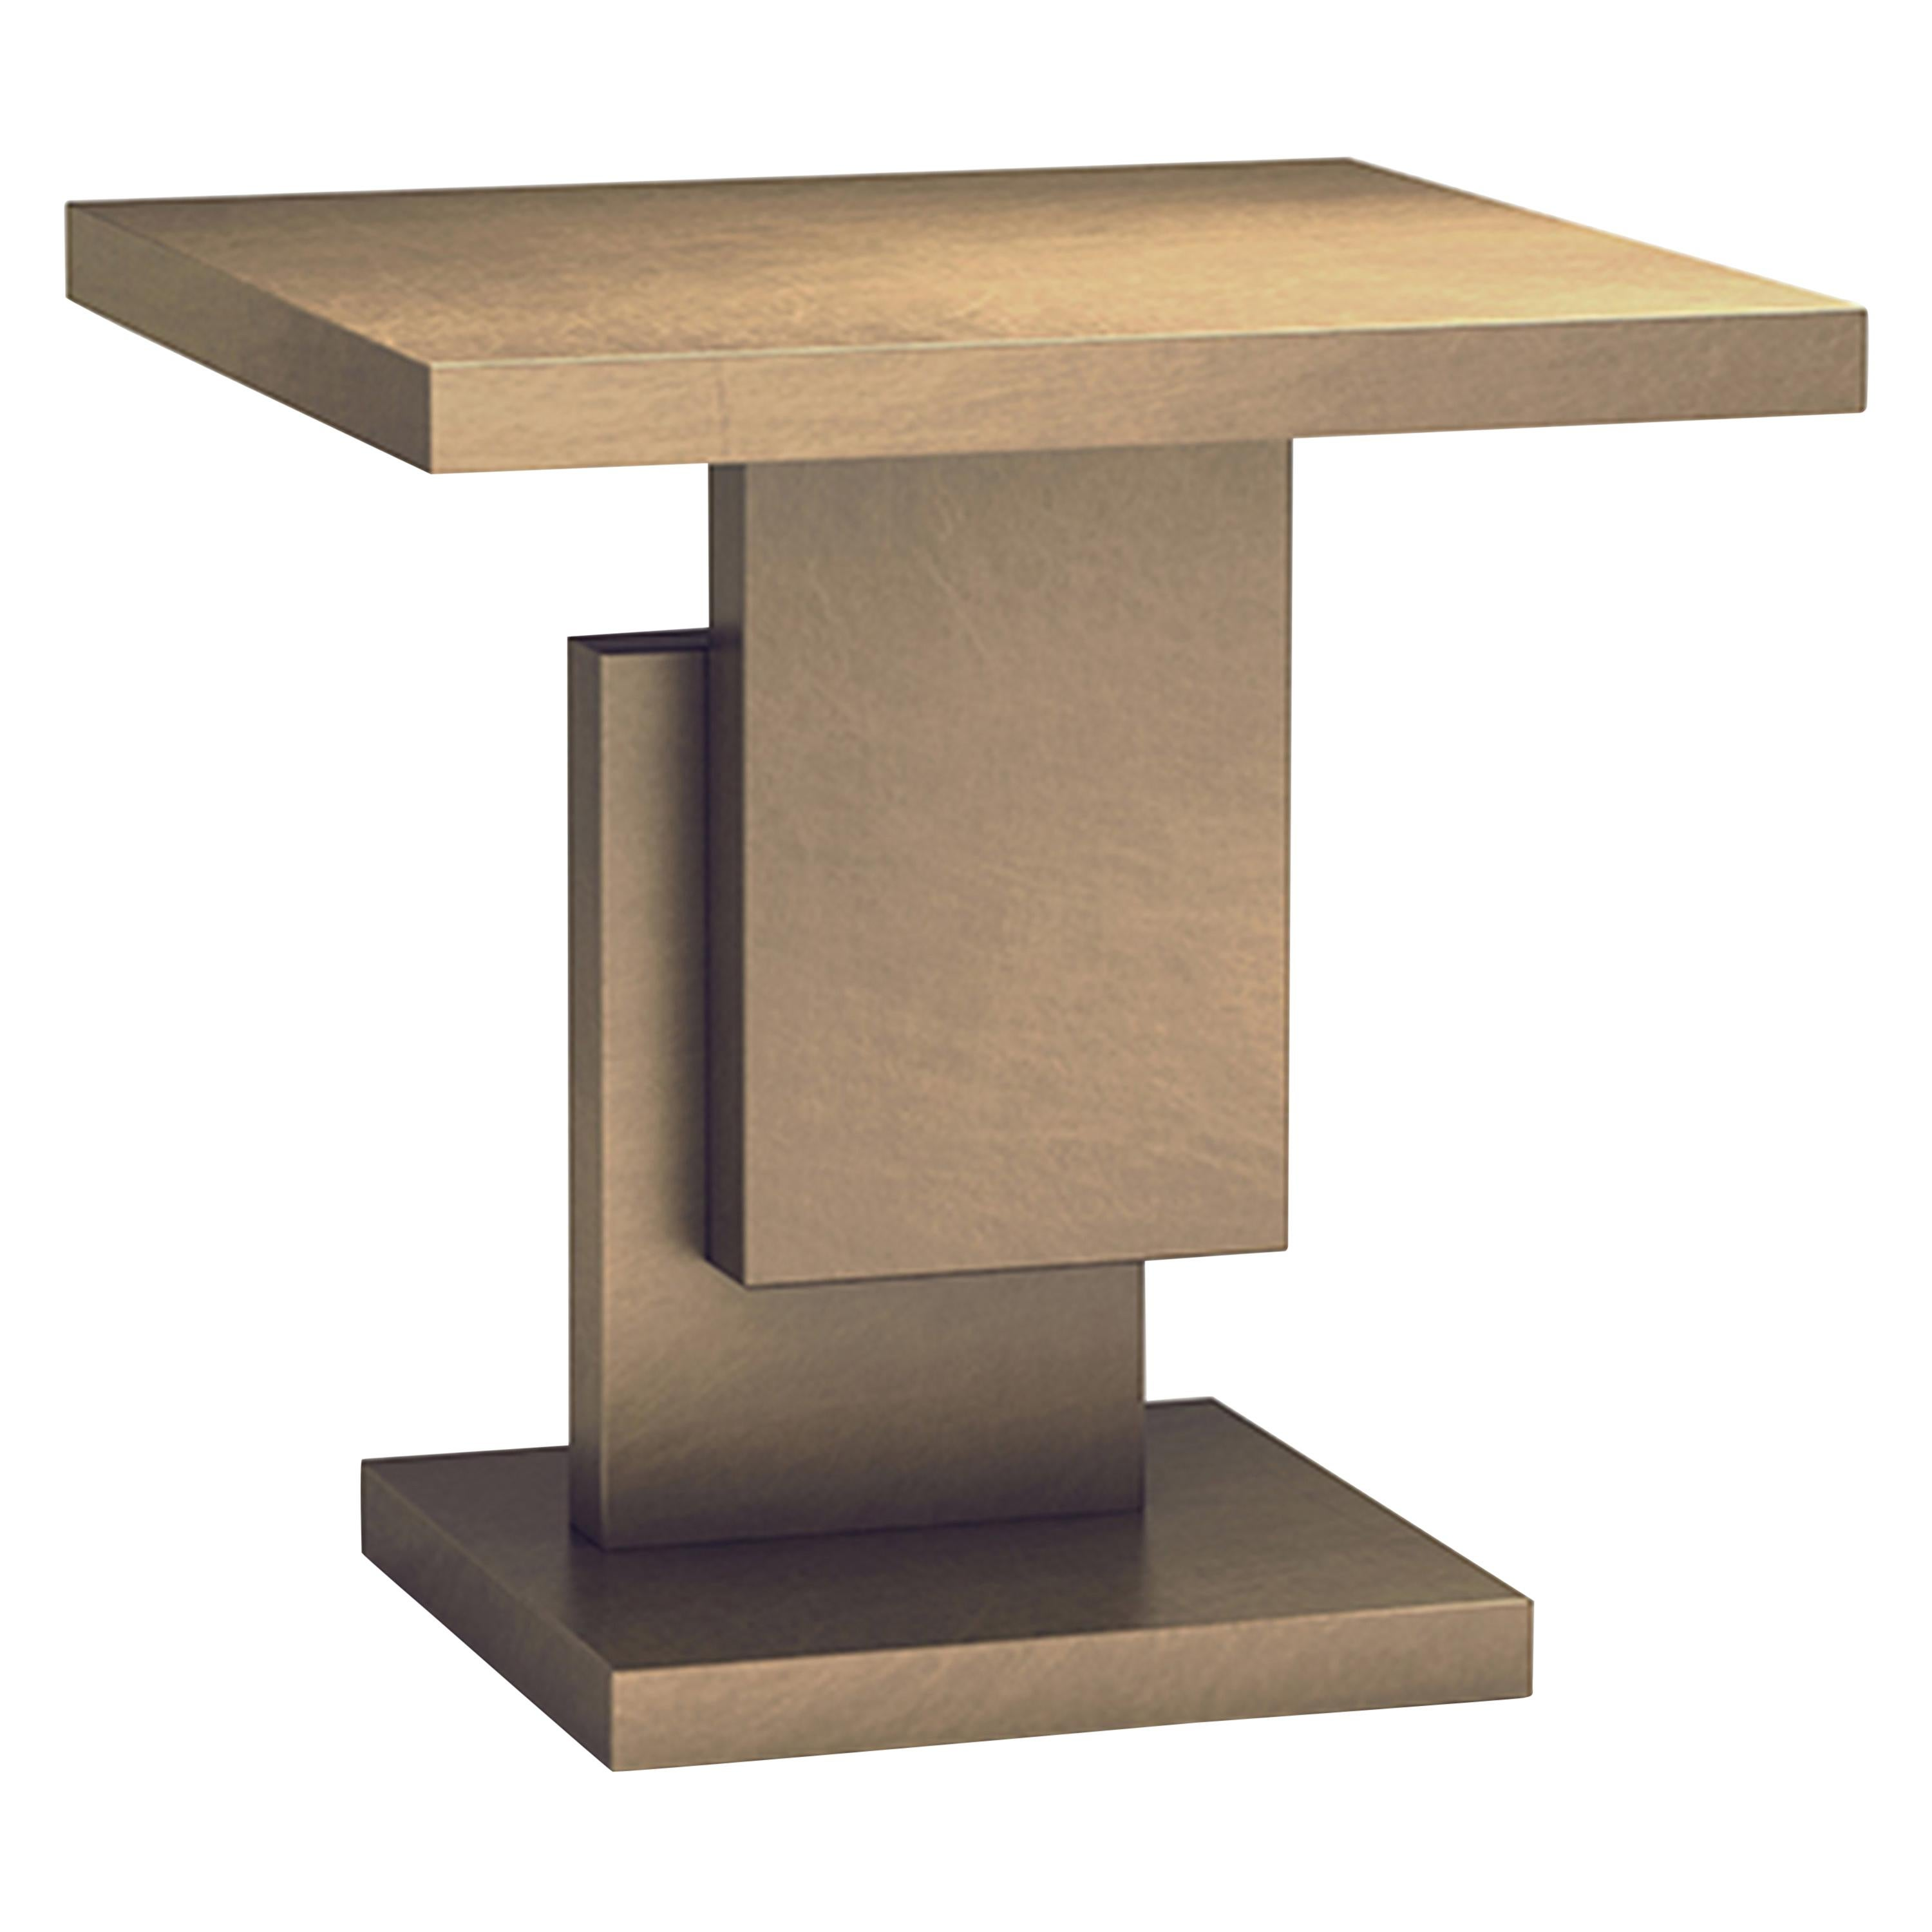 Gold/Copper Square Top Stack Side Table Geometric Customizable